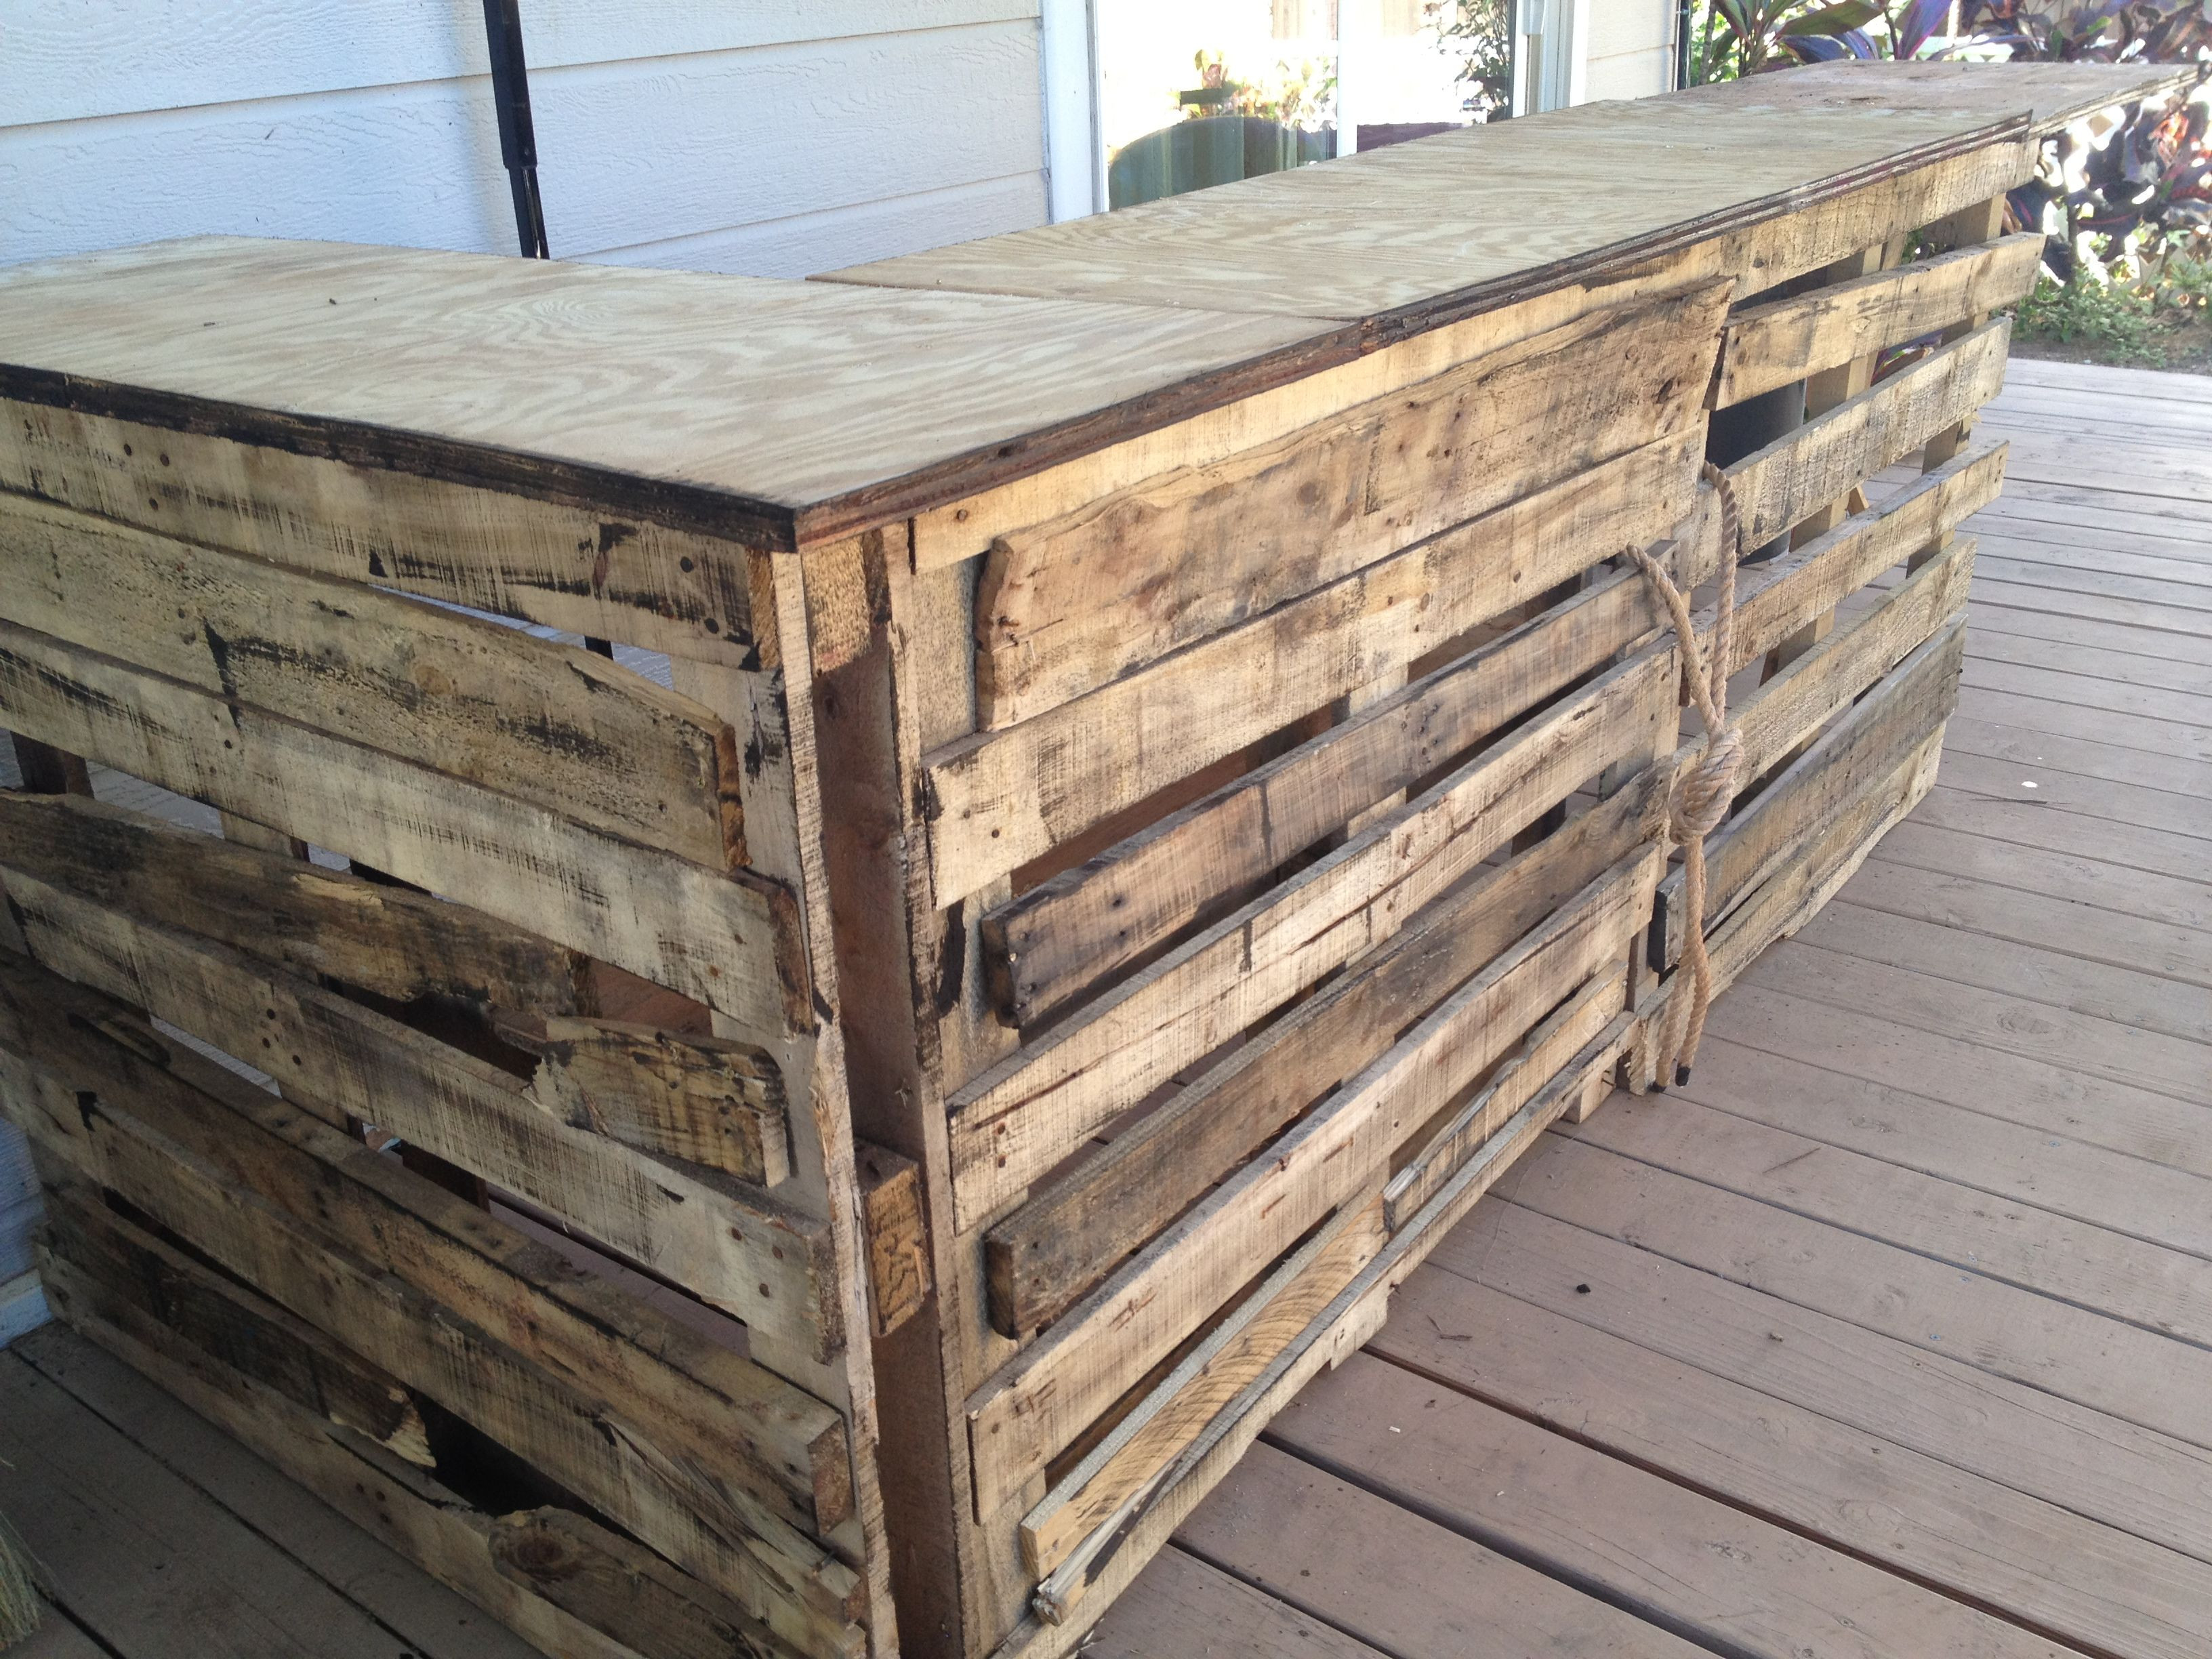 Best ideas about DIY Pallet Bar . Save or Pin Diy Pallet Bar Ideas And Projects Now.